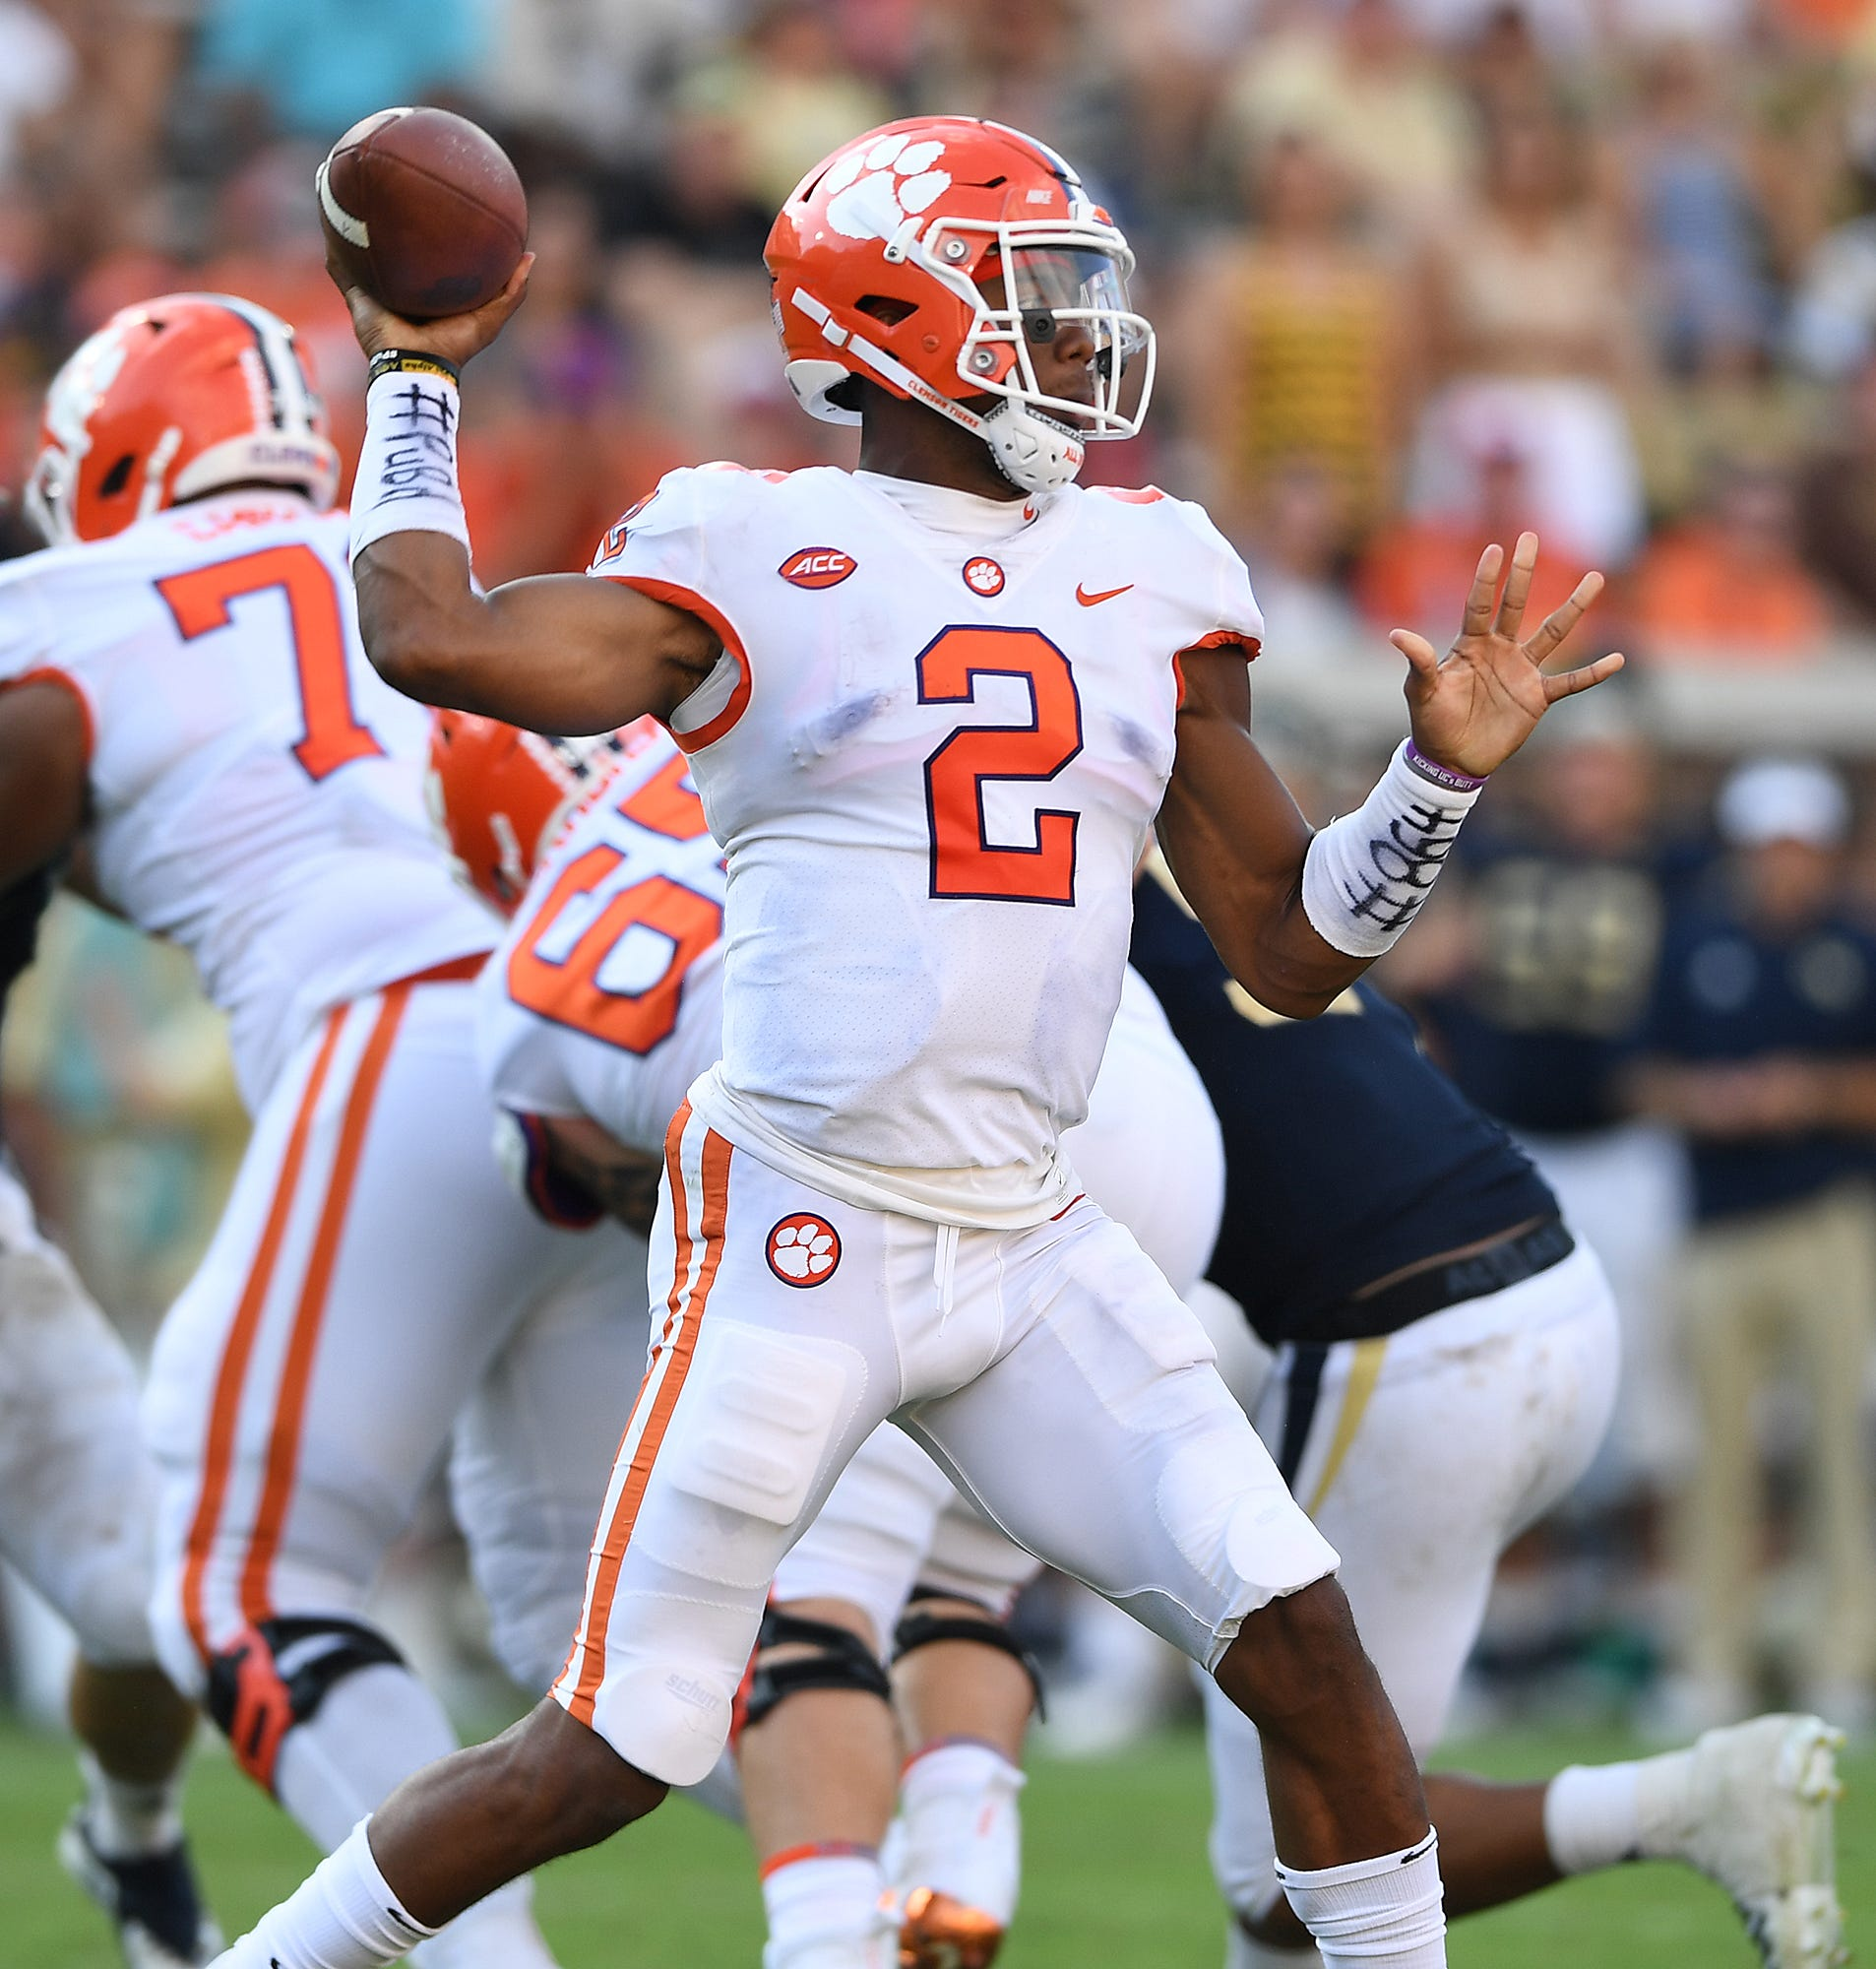 Former Clemson quarterback Kelly Bryant set for recruiting visit to North Carolina